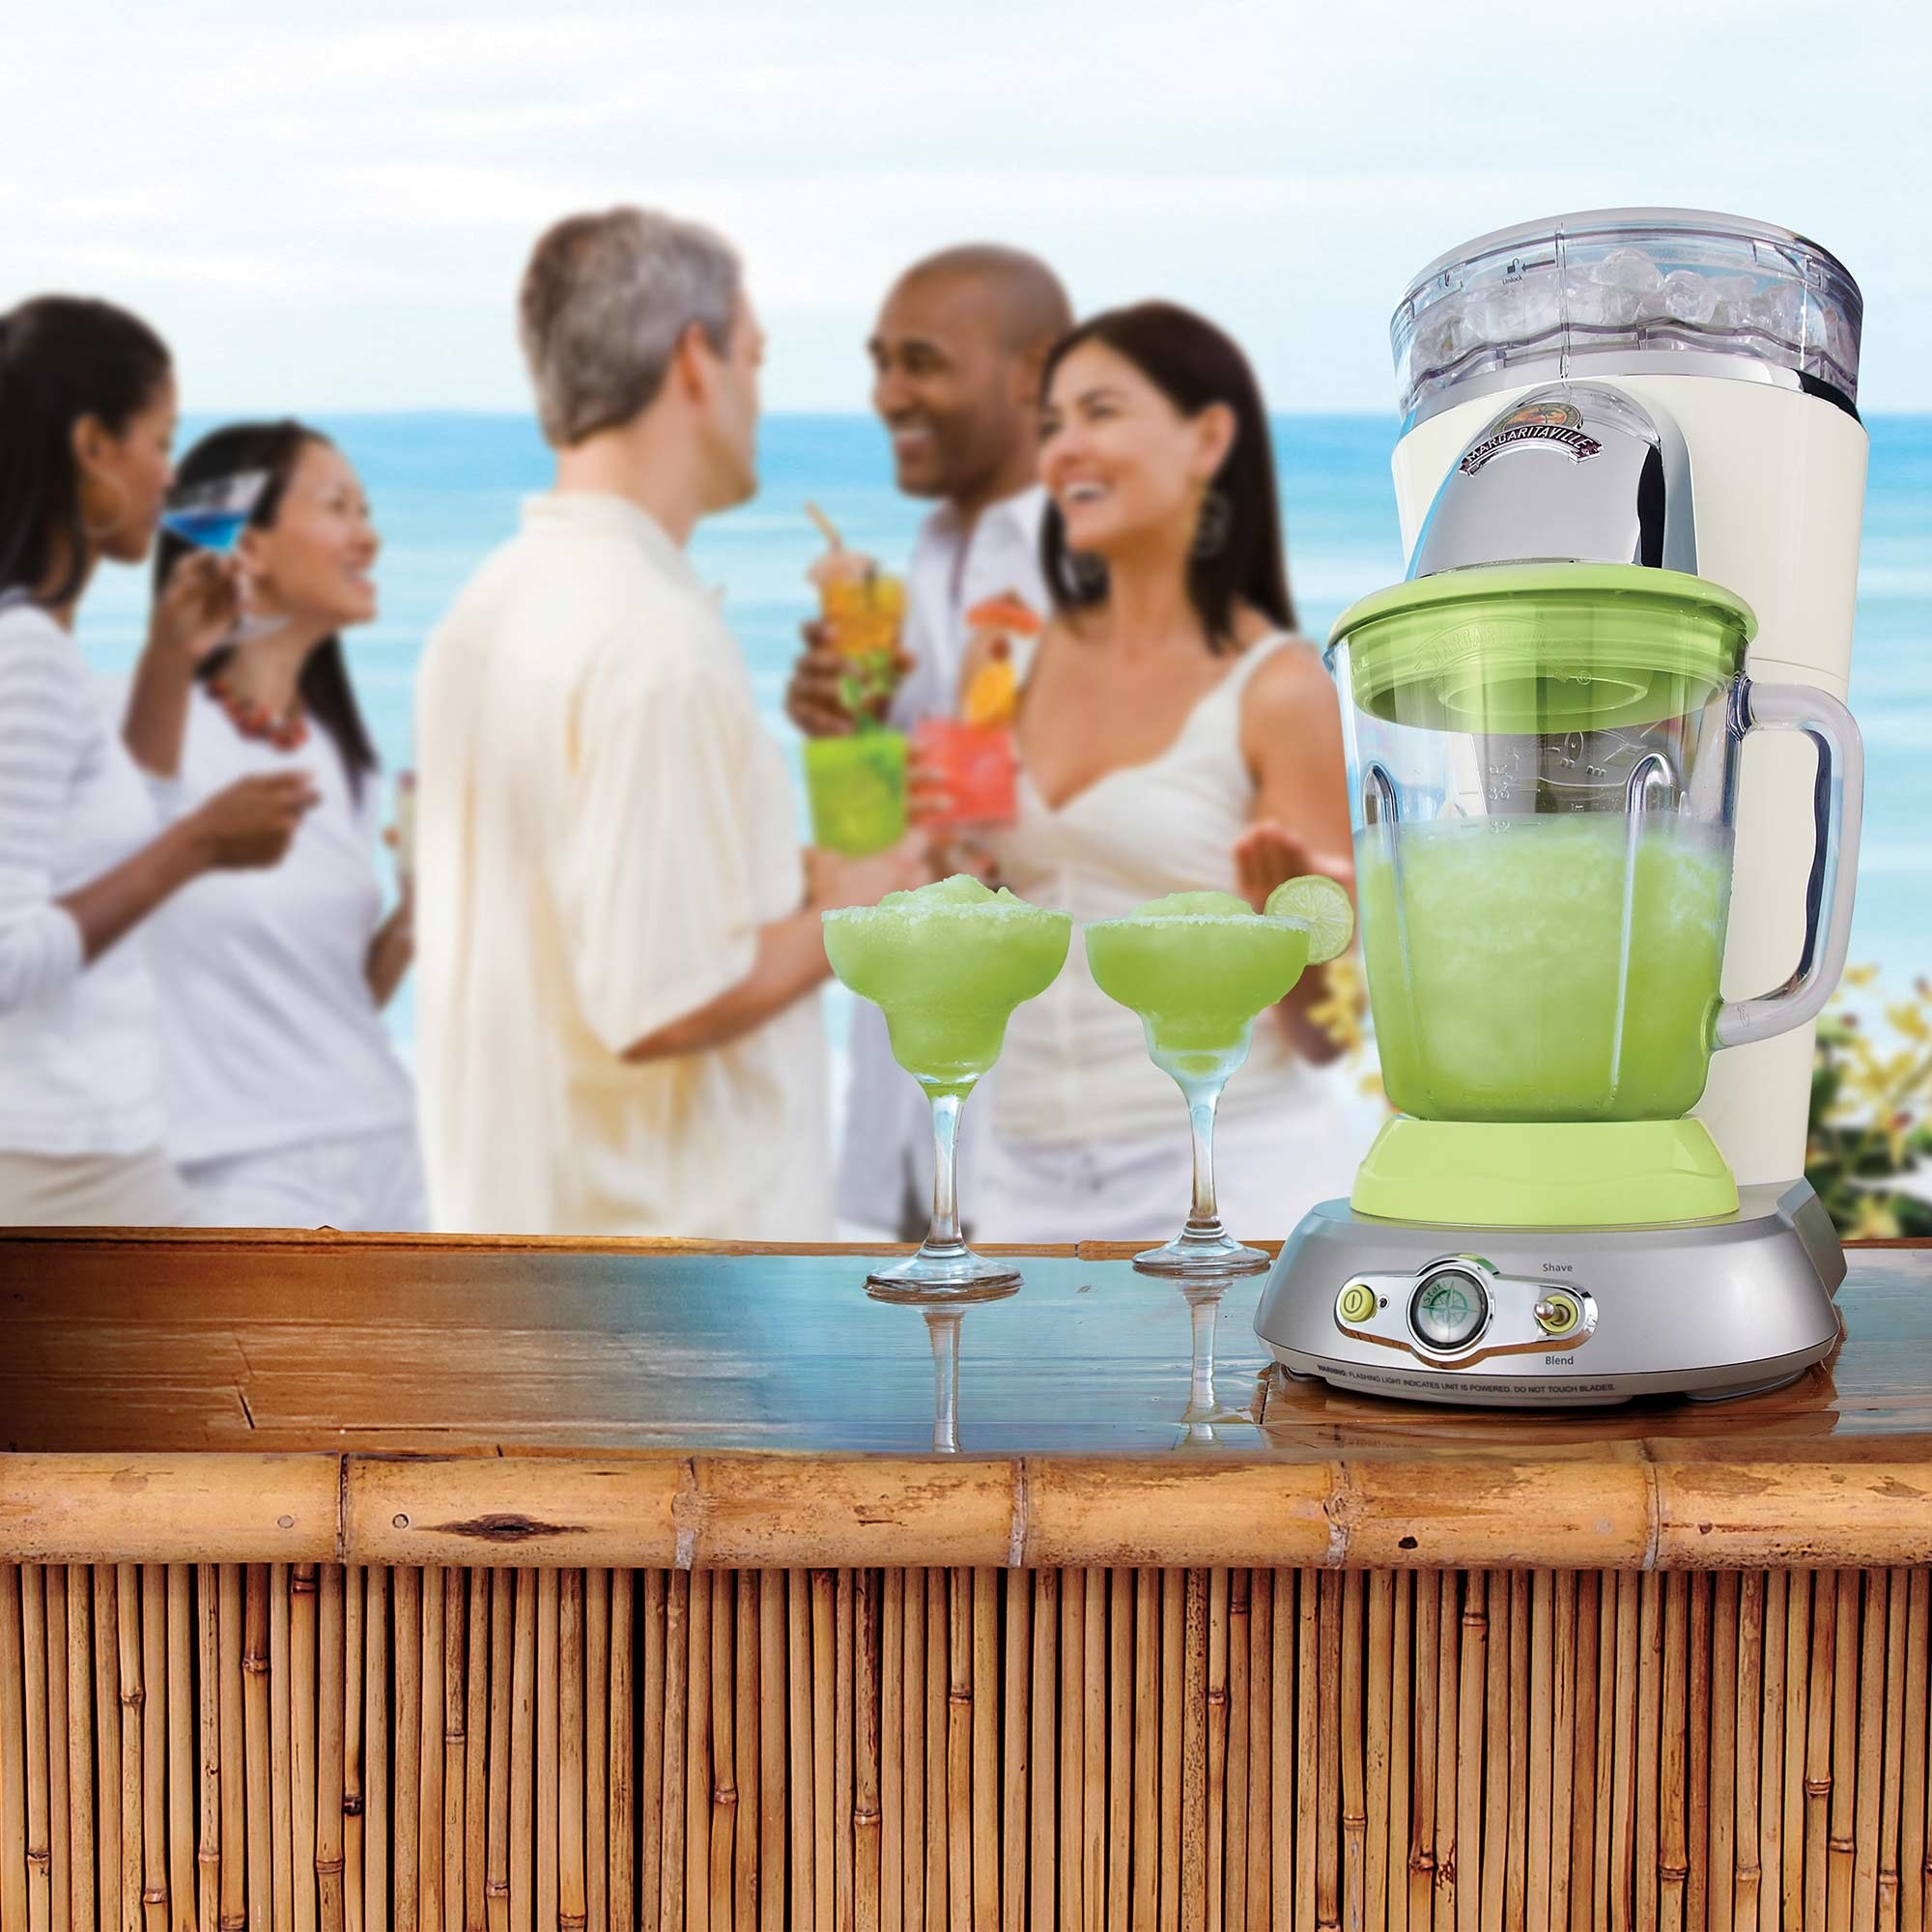 Green and white frozen drink and concoction maker